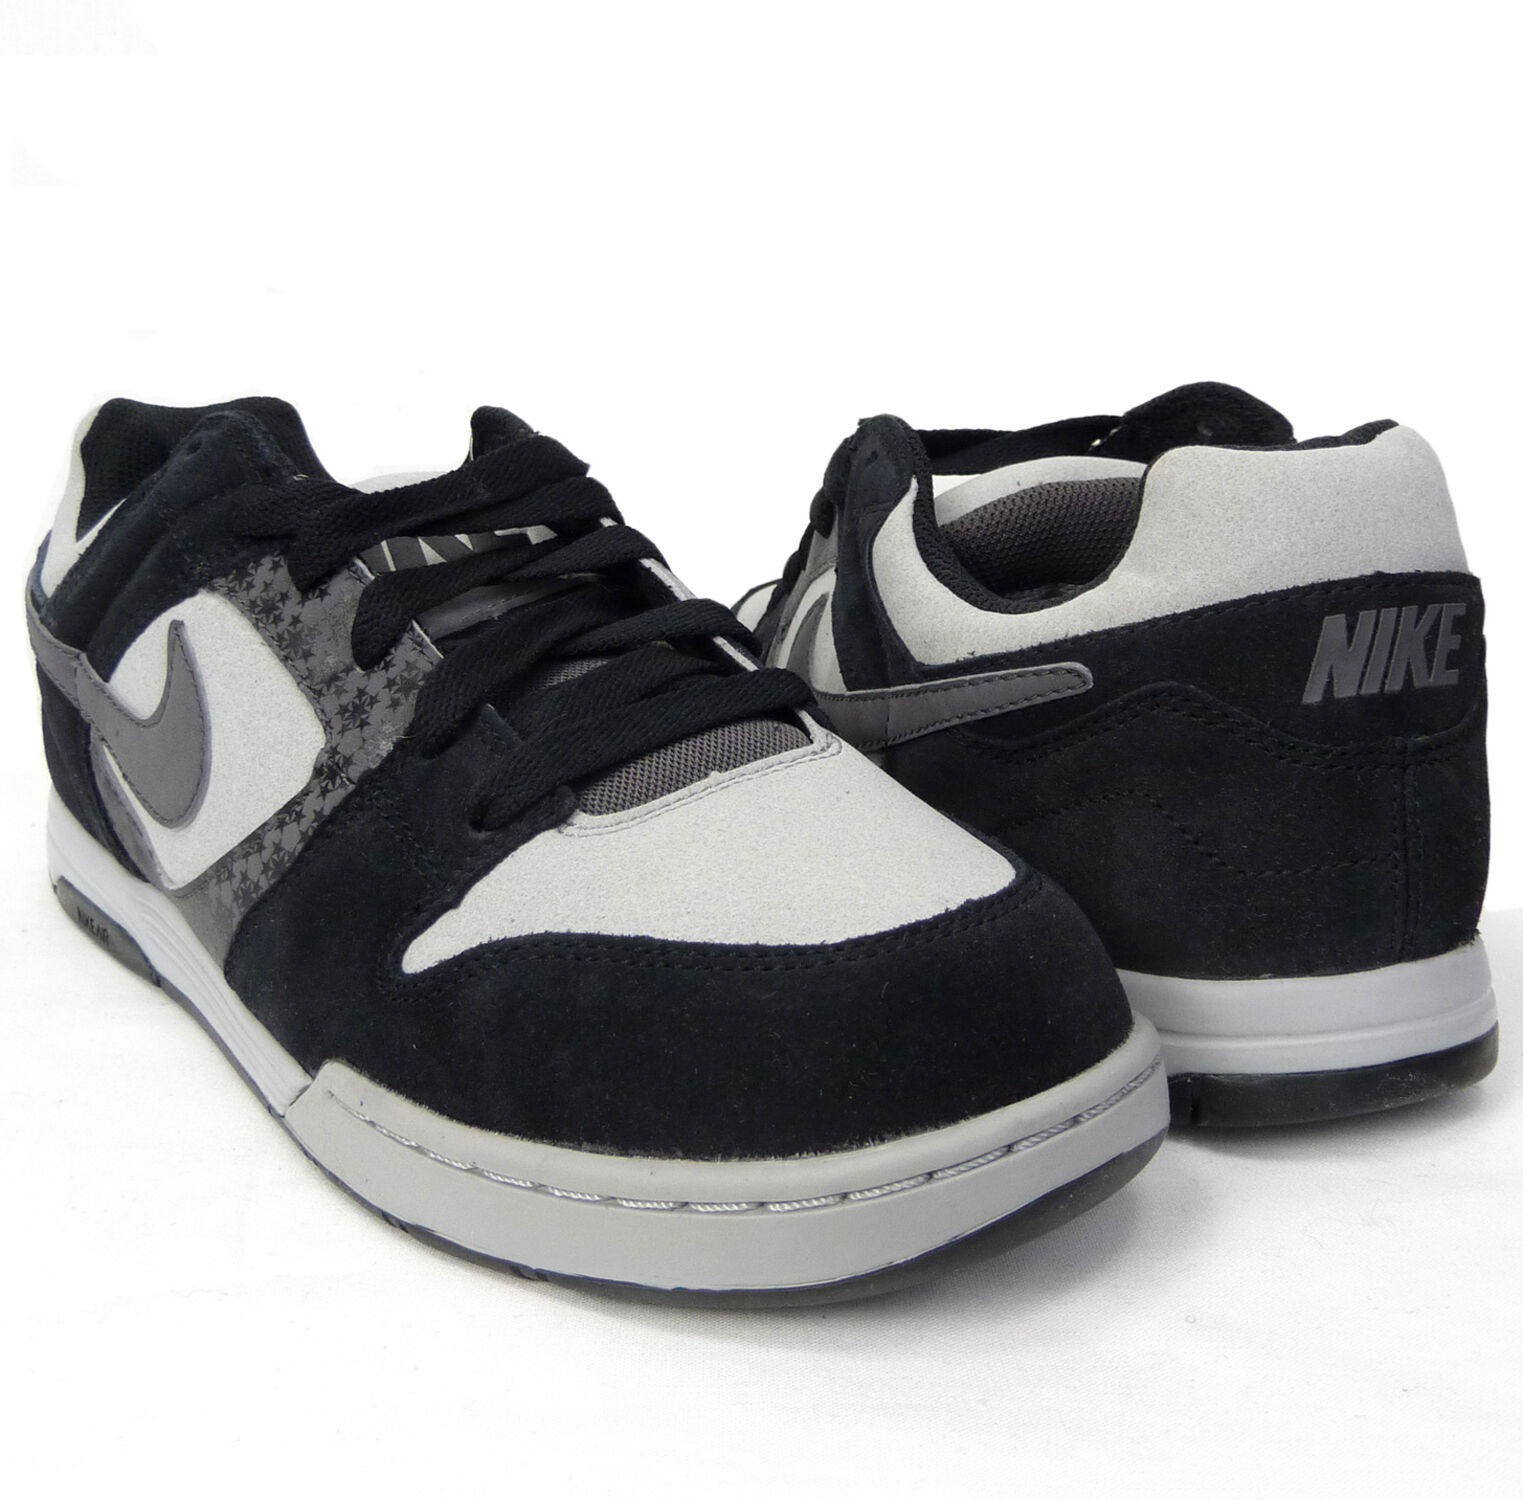 03816664bf8 NEW NIKE AIR TWILIGHT SNEAKERS SIZE 8.5 US DEADSTOCK SHOES  noicoi302-Athletic Shoes. Nike Air Max 1 ...